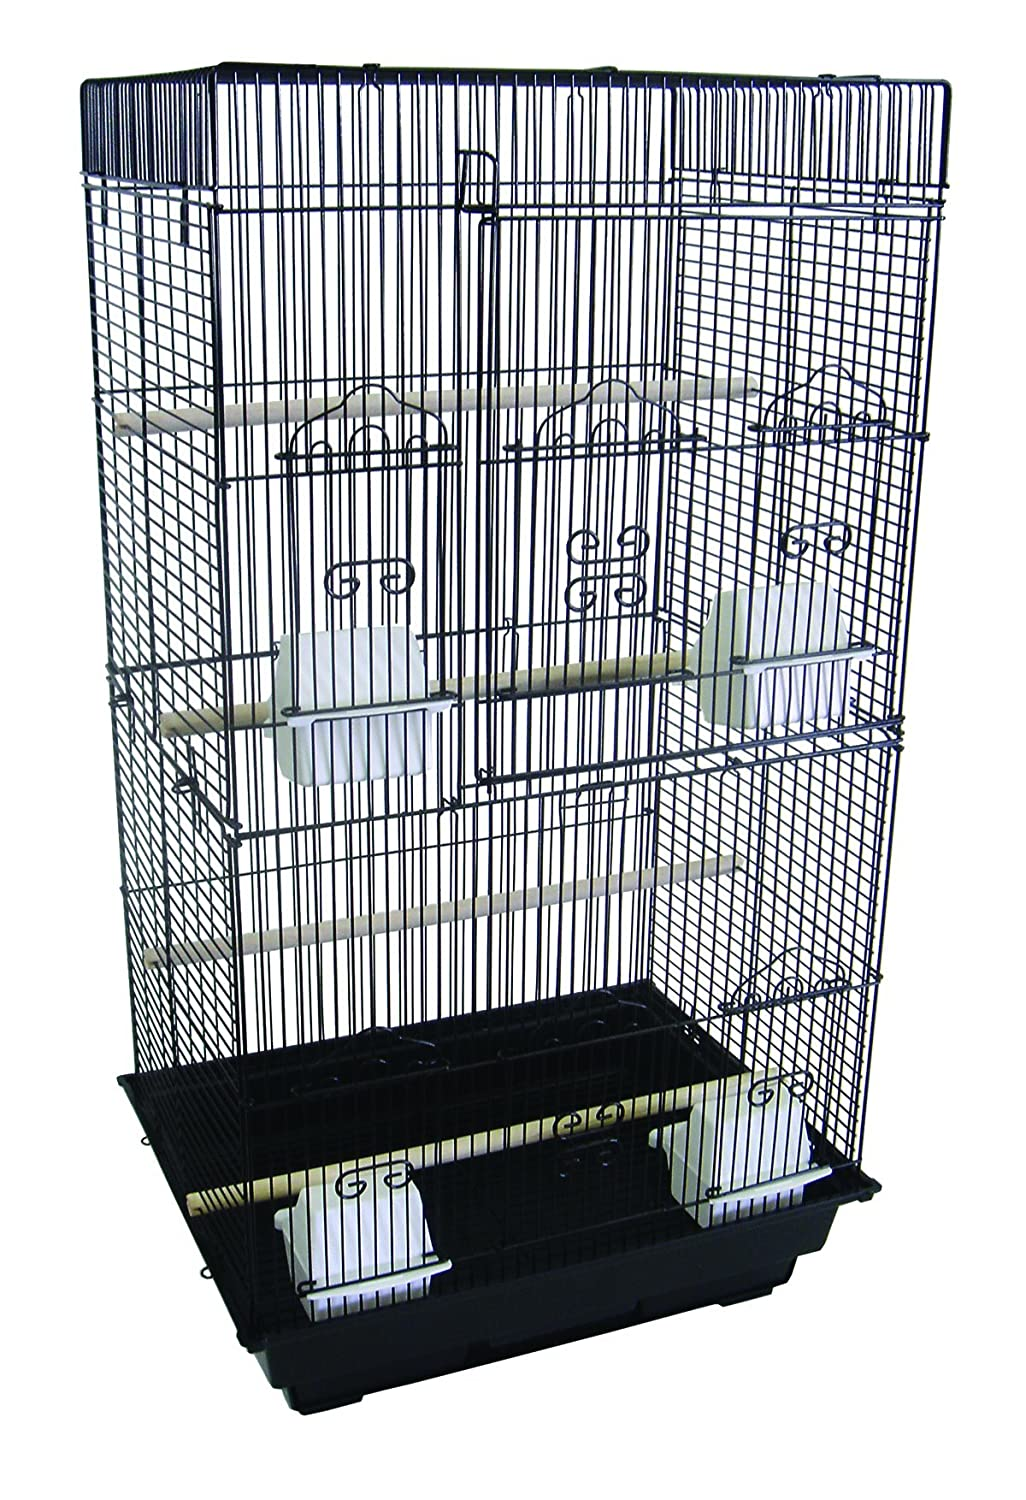 YML A6824 3/8-Inch Bar Spacing Tall Flat Top Small Bird Cage, 18-Inch by 14-Inch, White A6824WHT